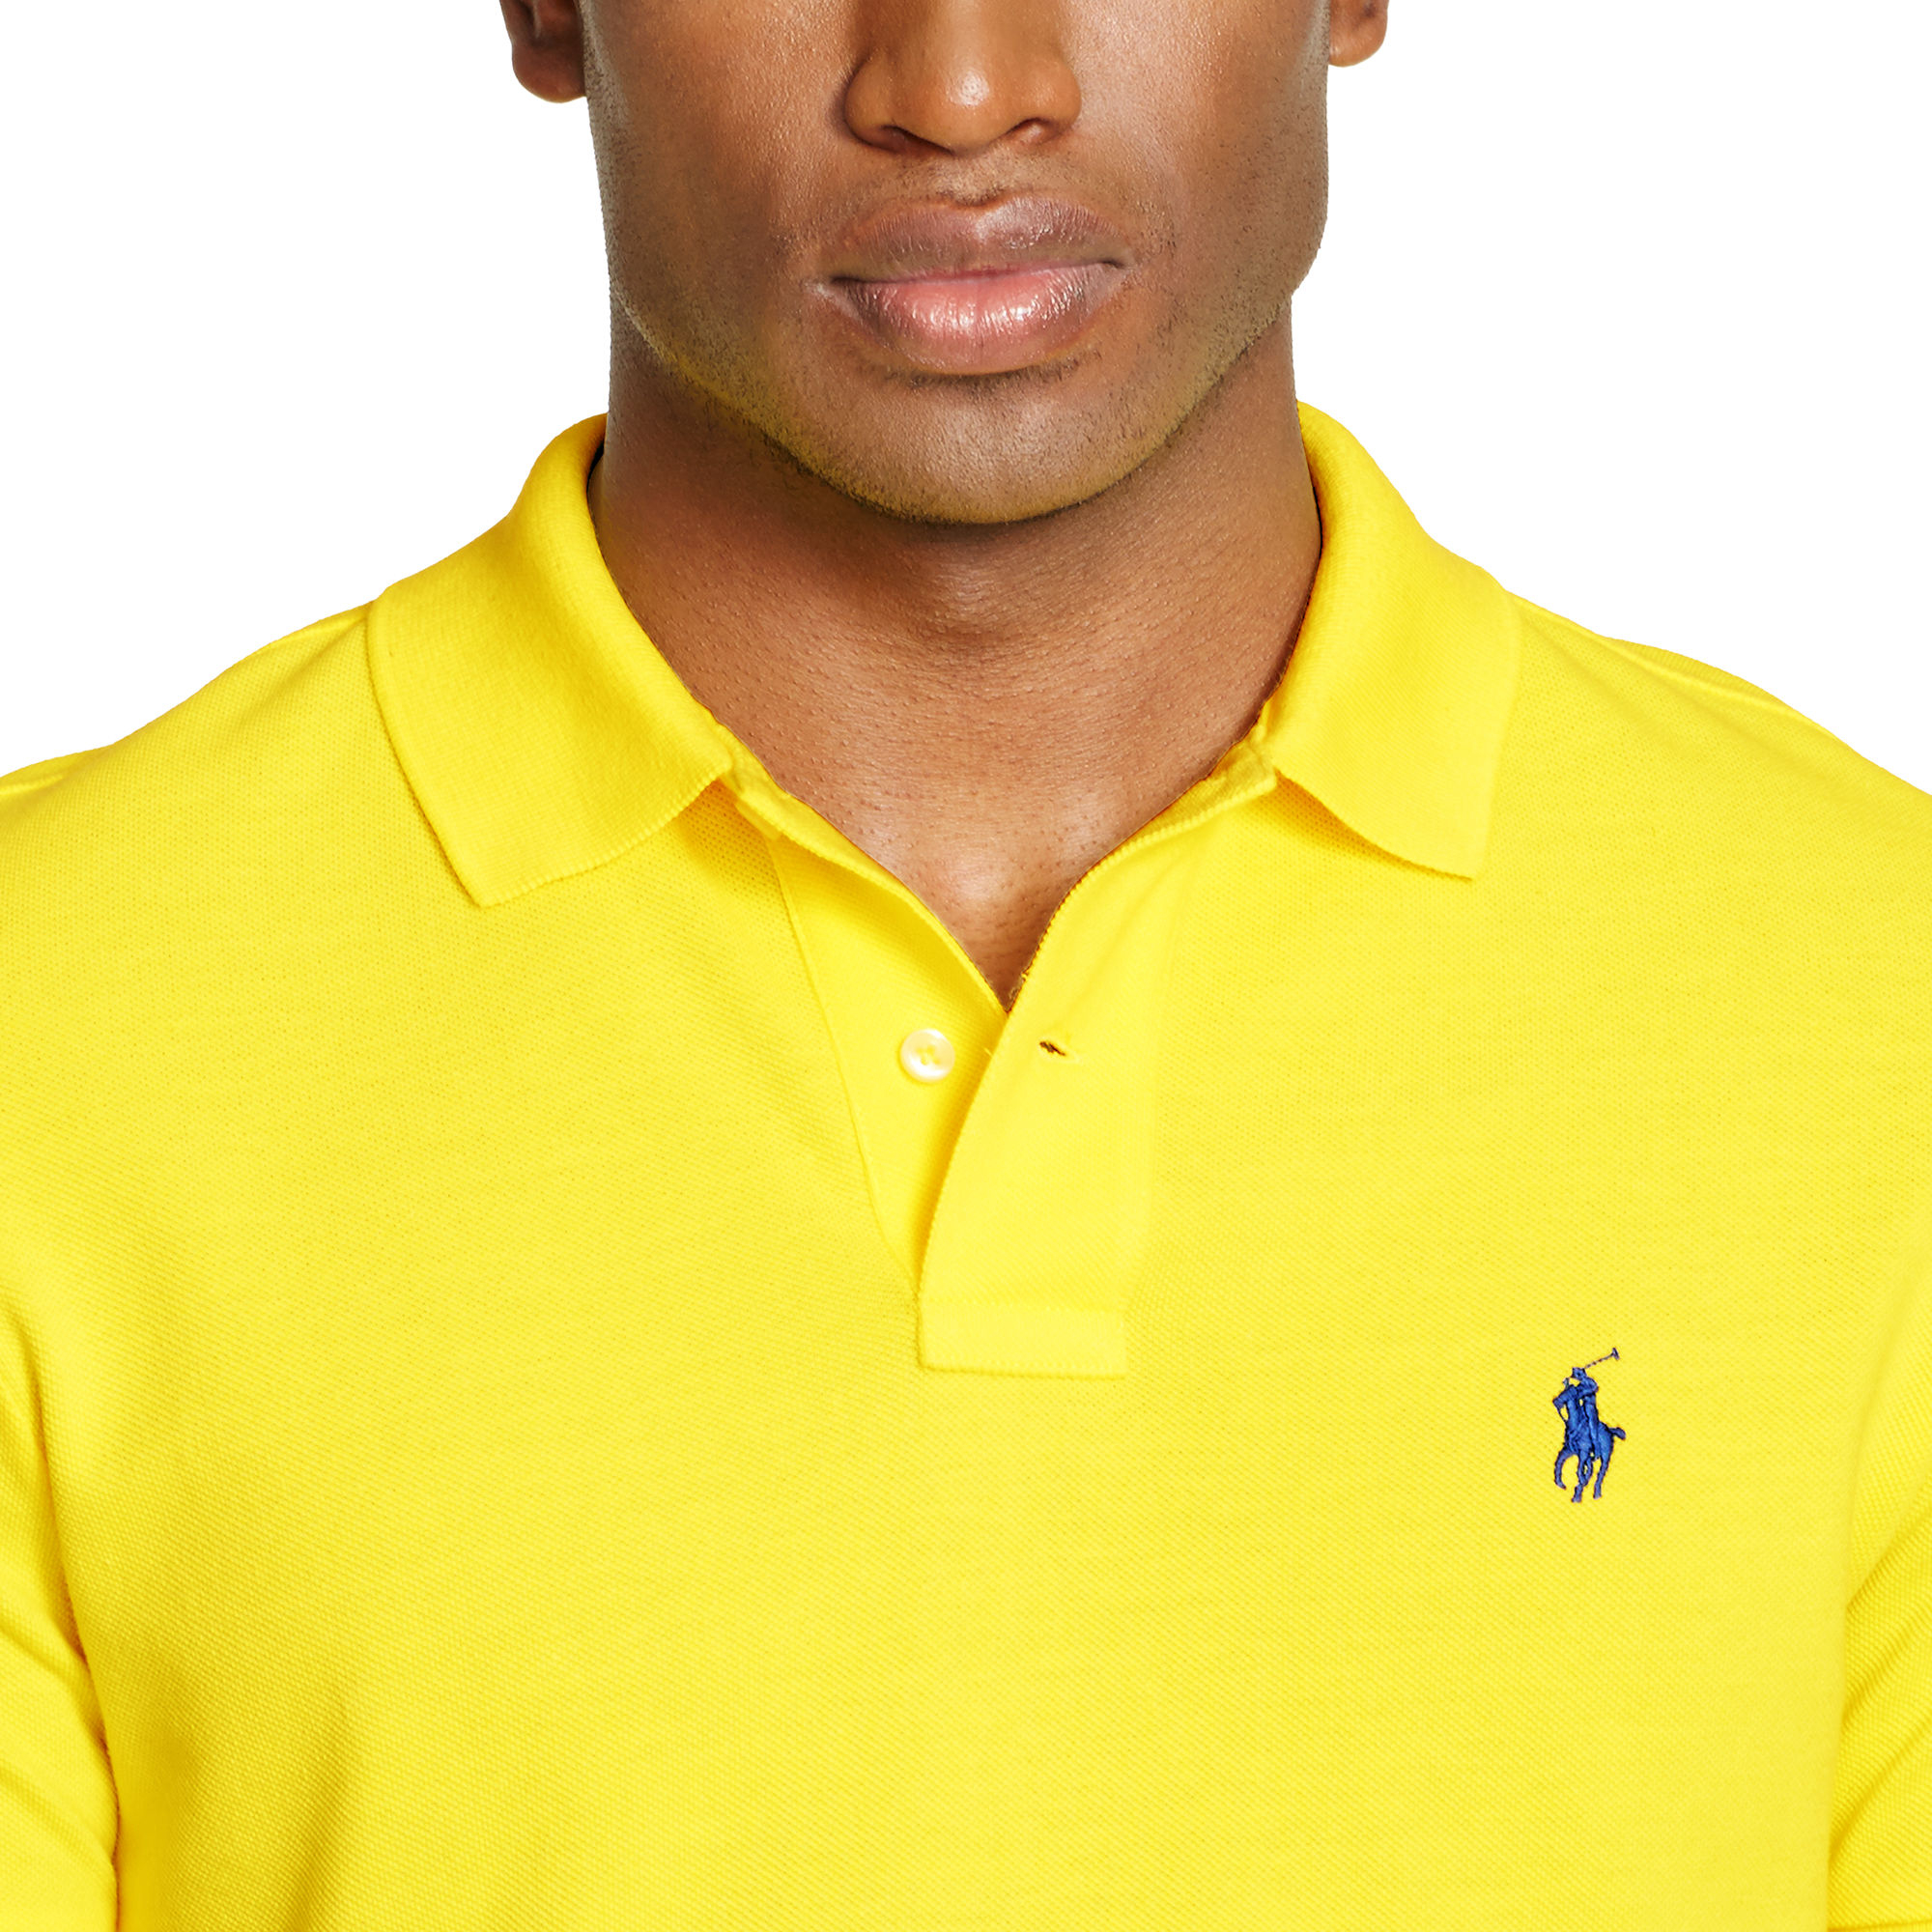 a6fe67969c733 Polo Ralph Lauren Custom-fit Mesh Polo Shirt in Yellow for Men - Lyst